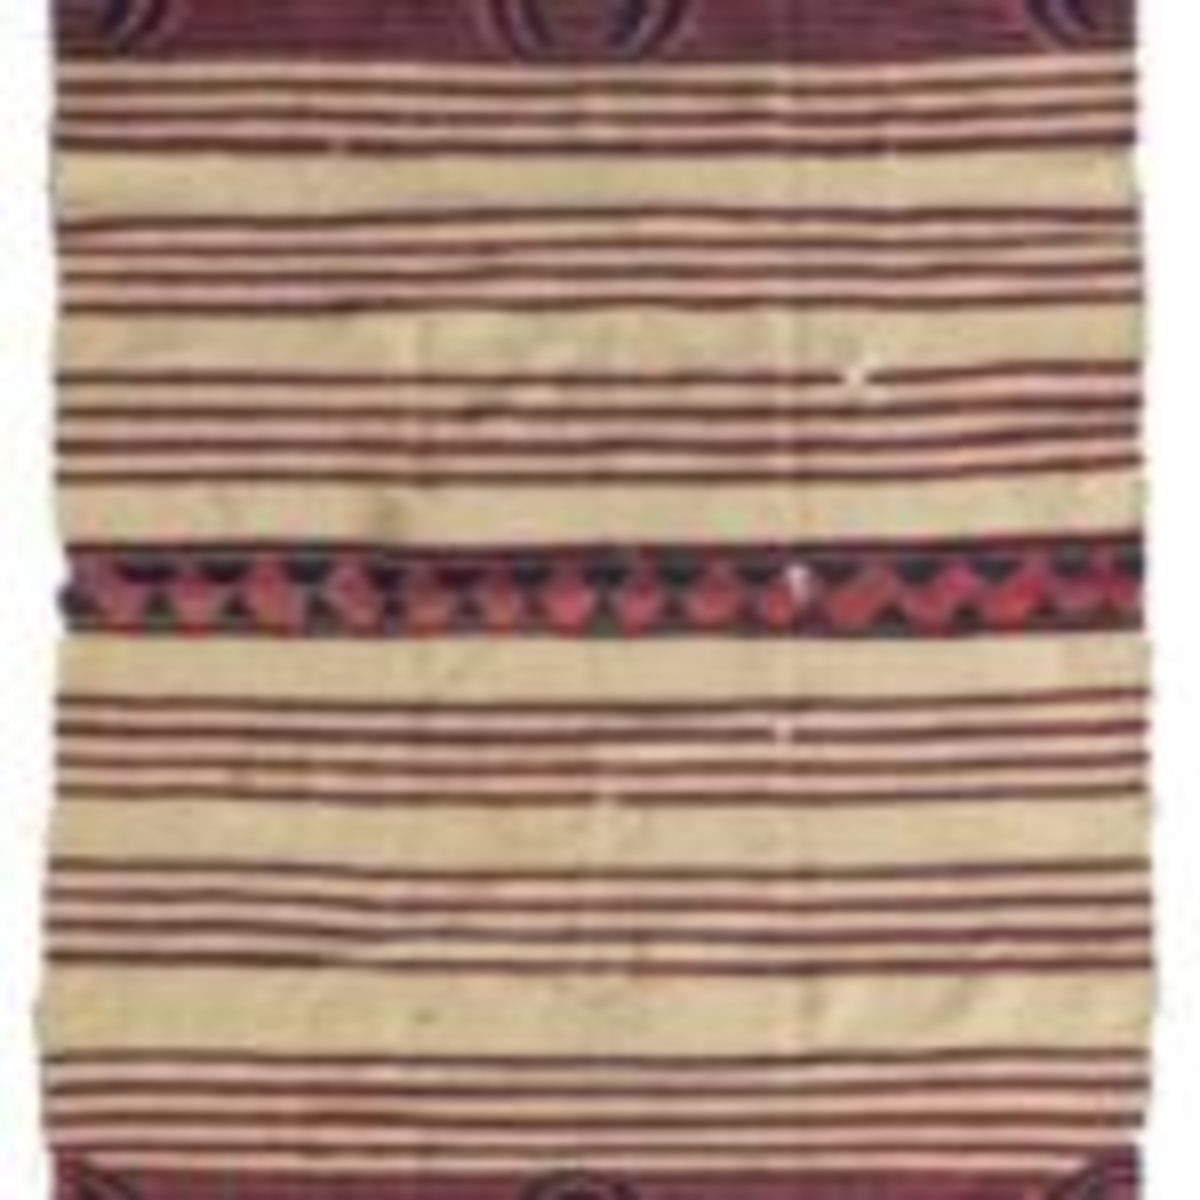 A Navajo classic period child's wearing blanket, mid-19th century, cochineal and indigo dyes, $93,750.